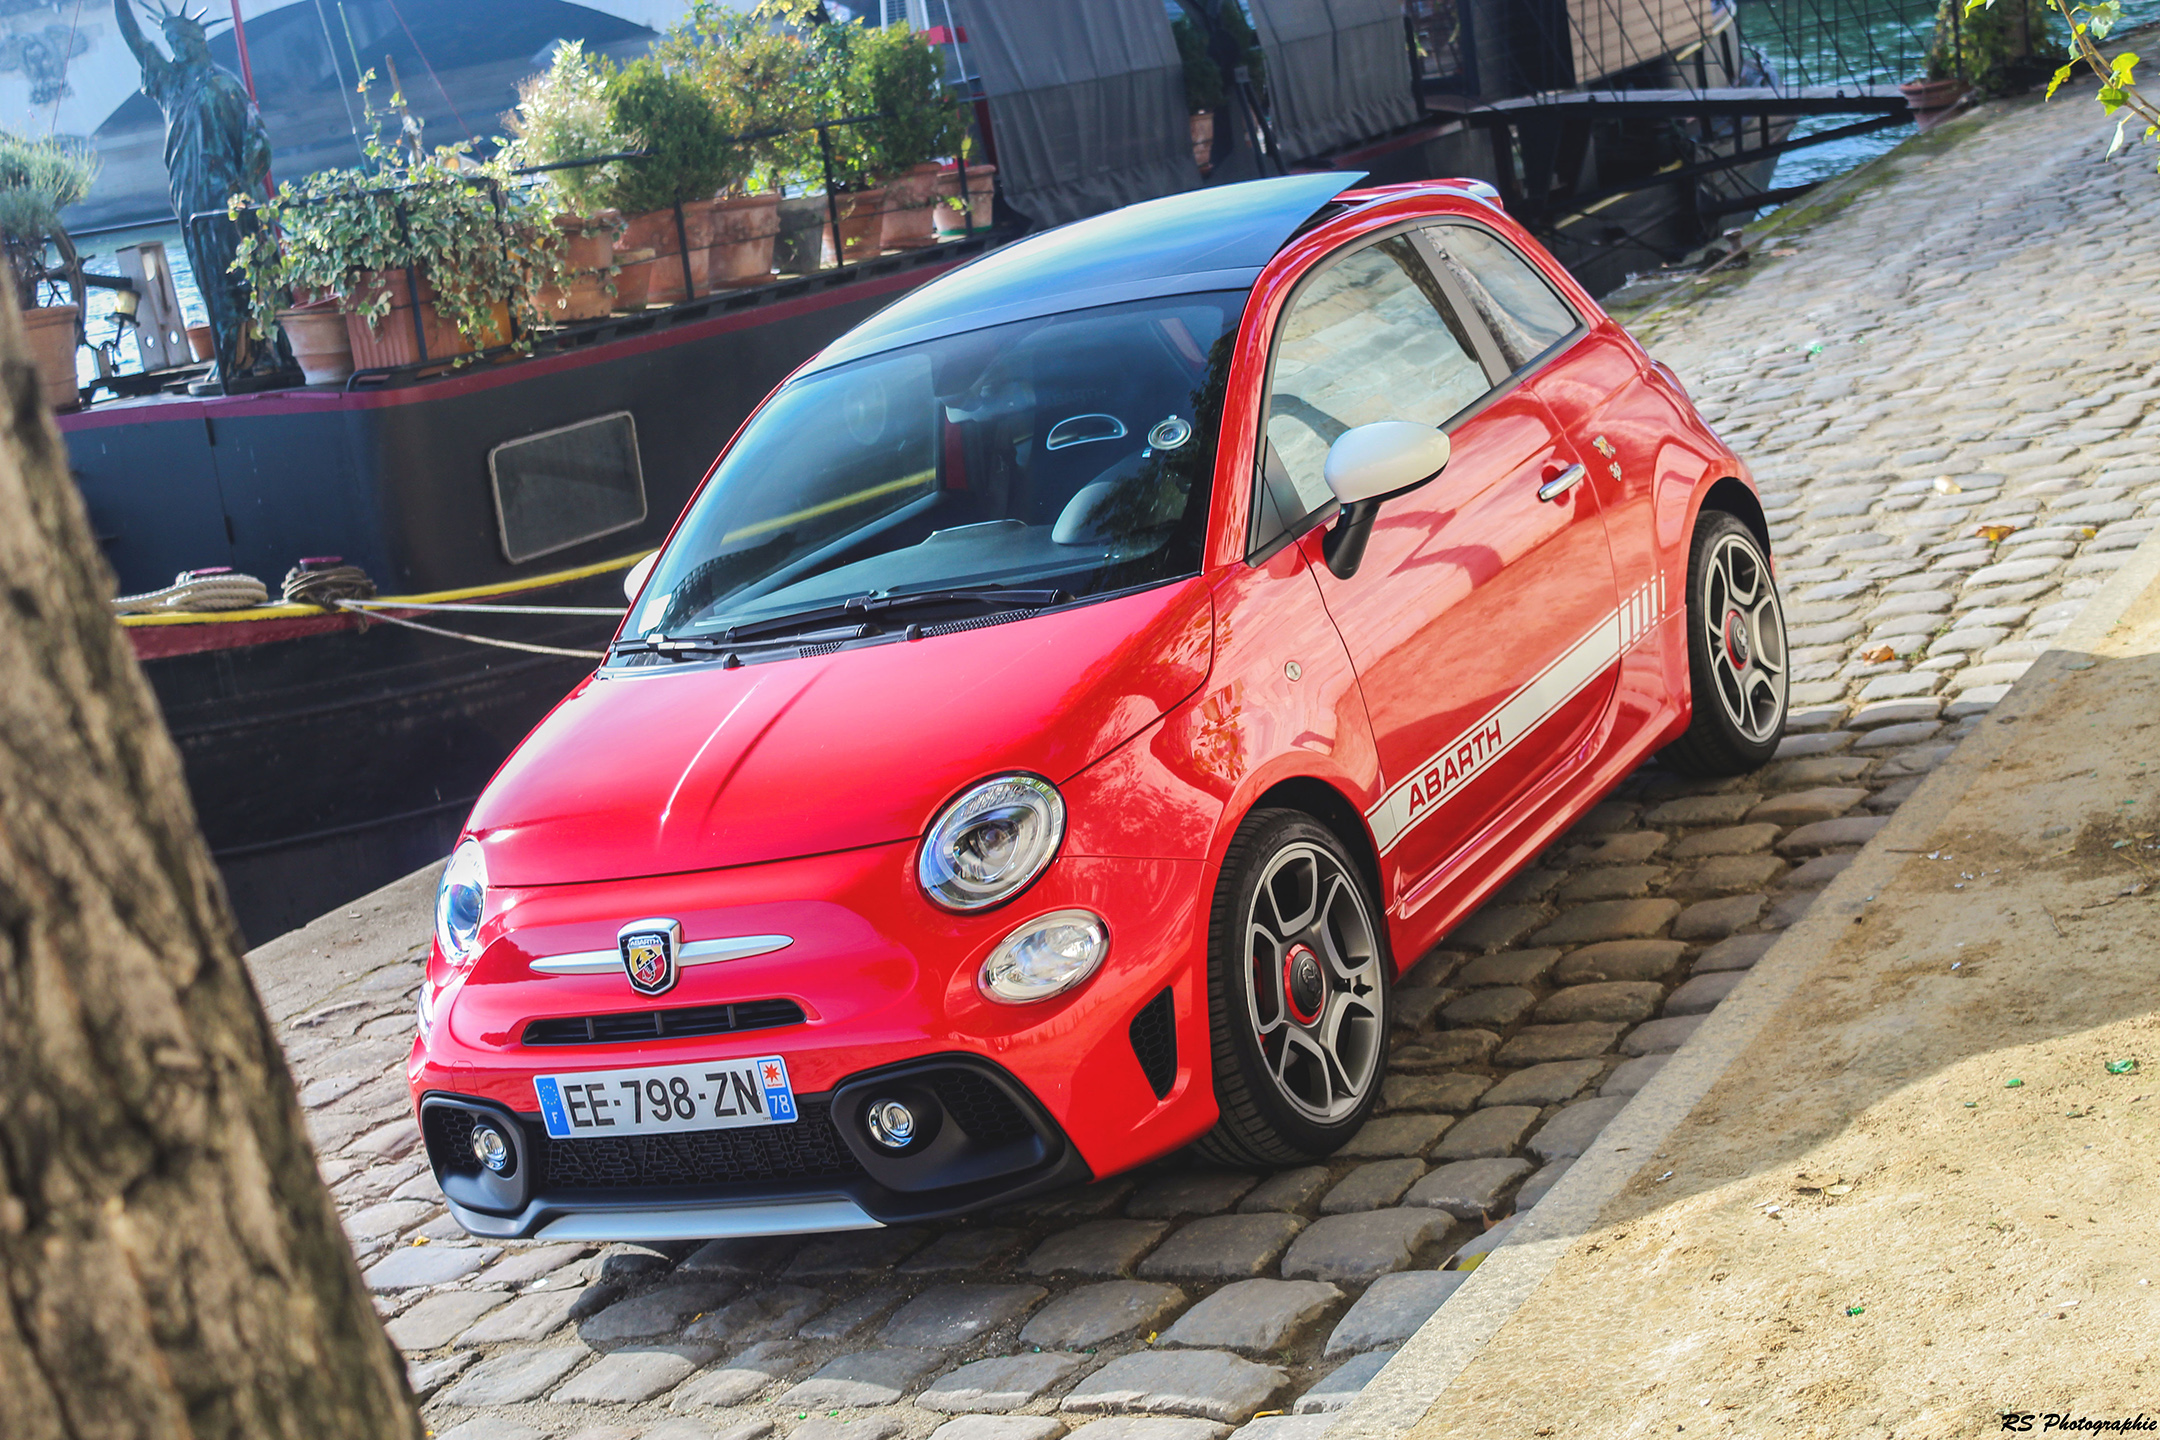 abarth-595-profil-side-arnaud-demasier-rsphotographie